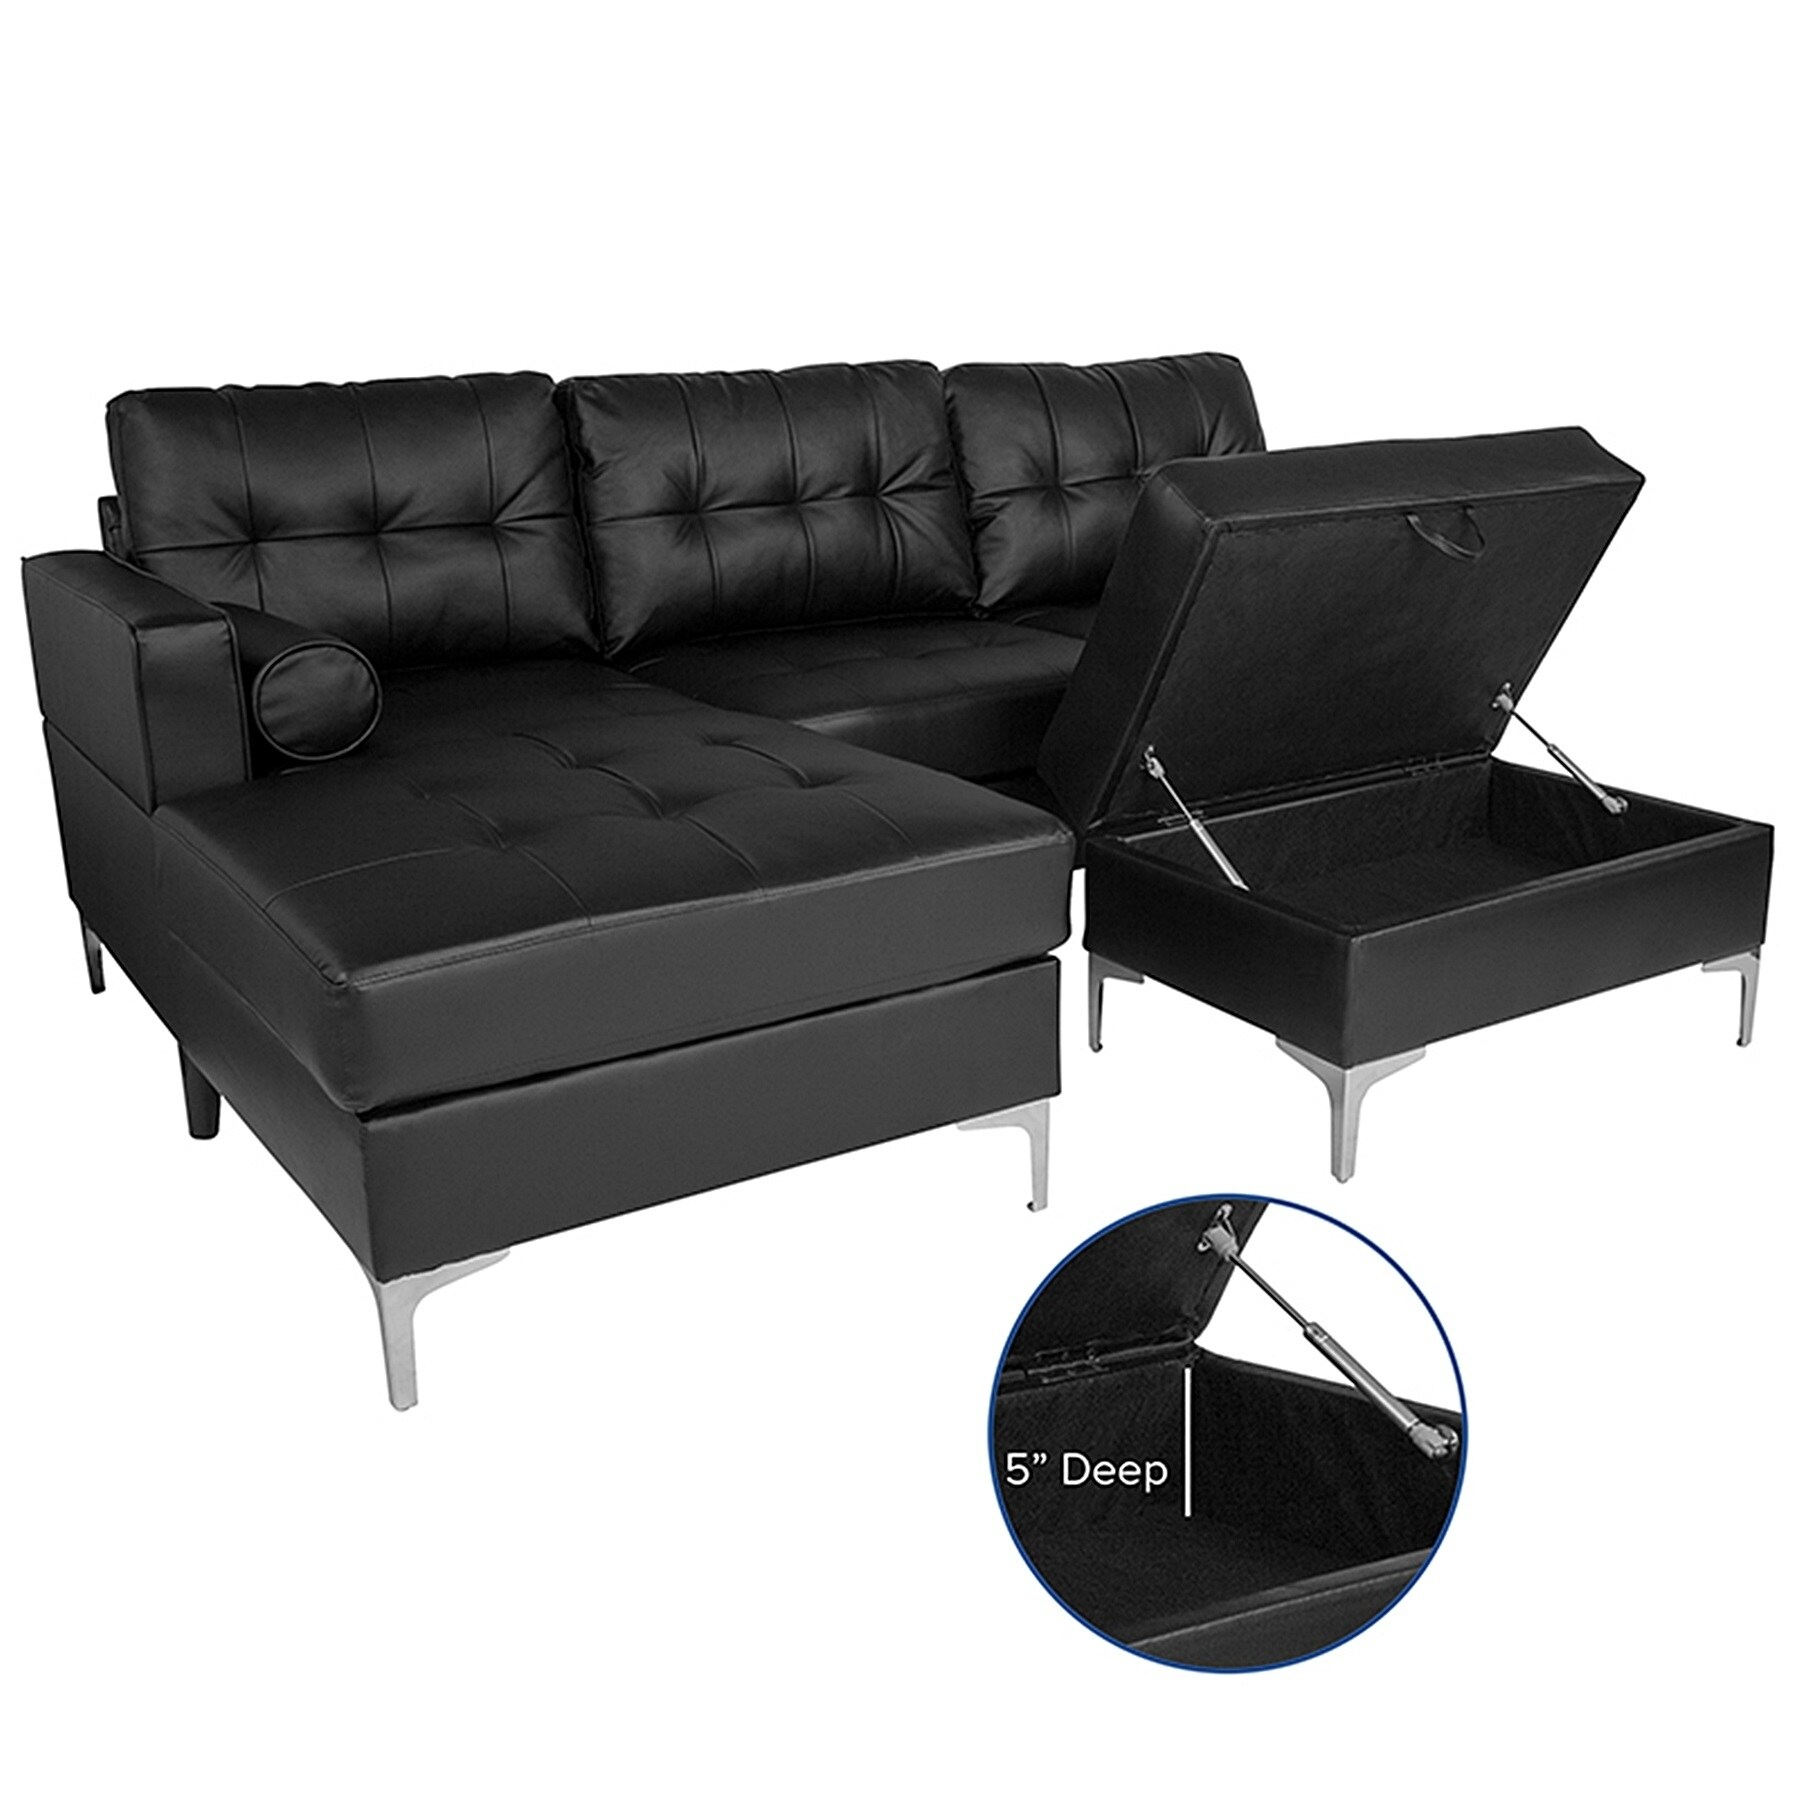 Bellmore 3 Piece Black Leather Sectional Sofa With Left Facing Chaise And Storage Ottoman